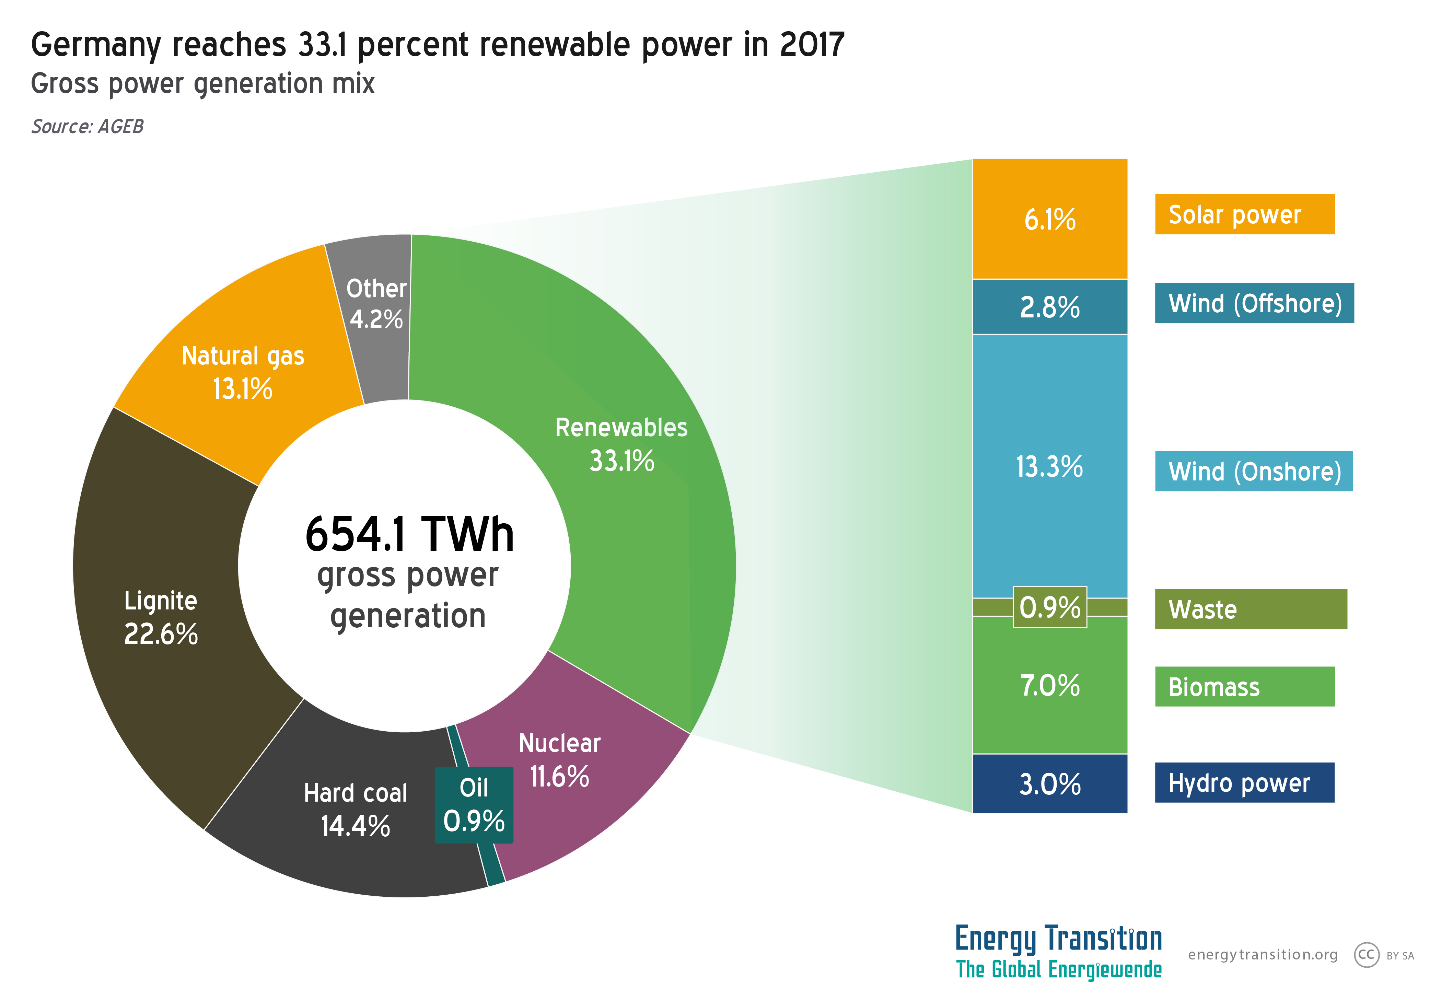 Germanys Energy Consumption In 2017 Transition How Electricity Generation From Biomass Works If Germany Were To Continue Add 5 Renewables Annually It Would Reach 100 Only 13 Years By 2030 But This Growth Will Stagnate Over The Next Few